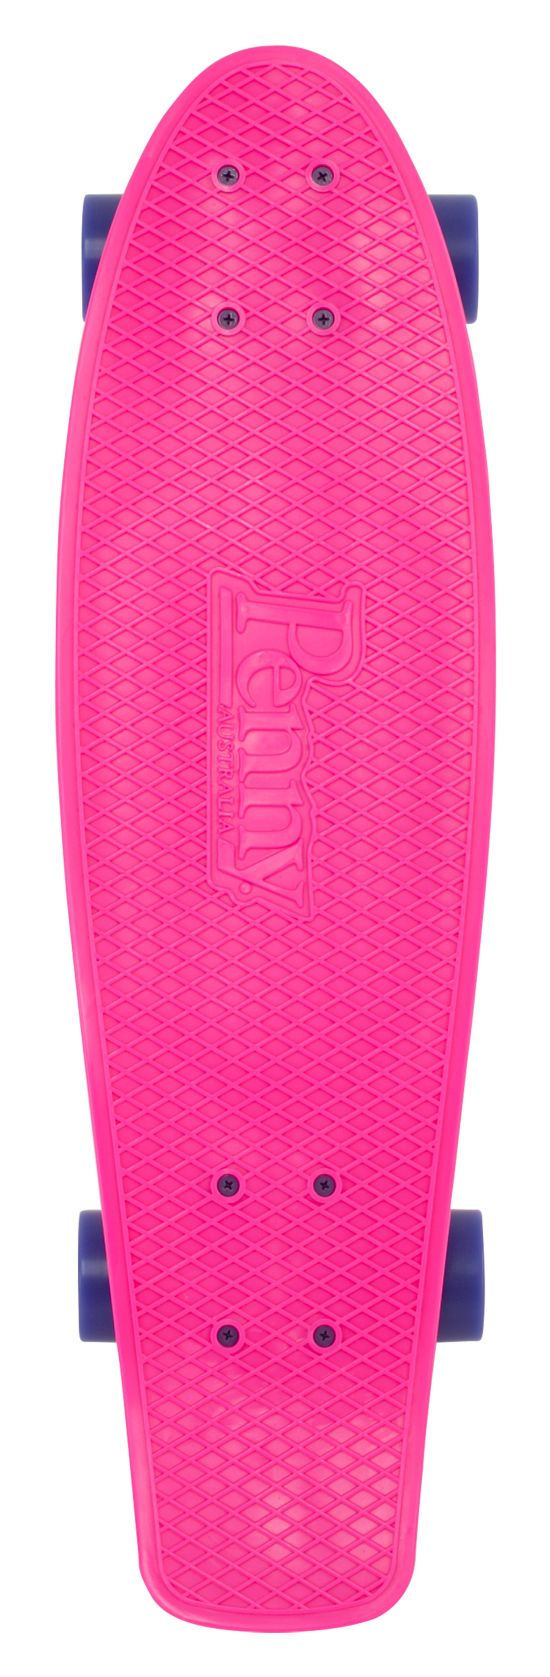 "Nickel 27"" Skateboard PINK"